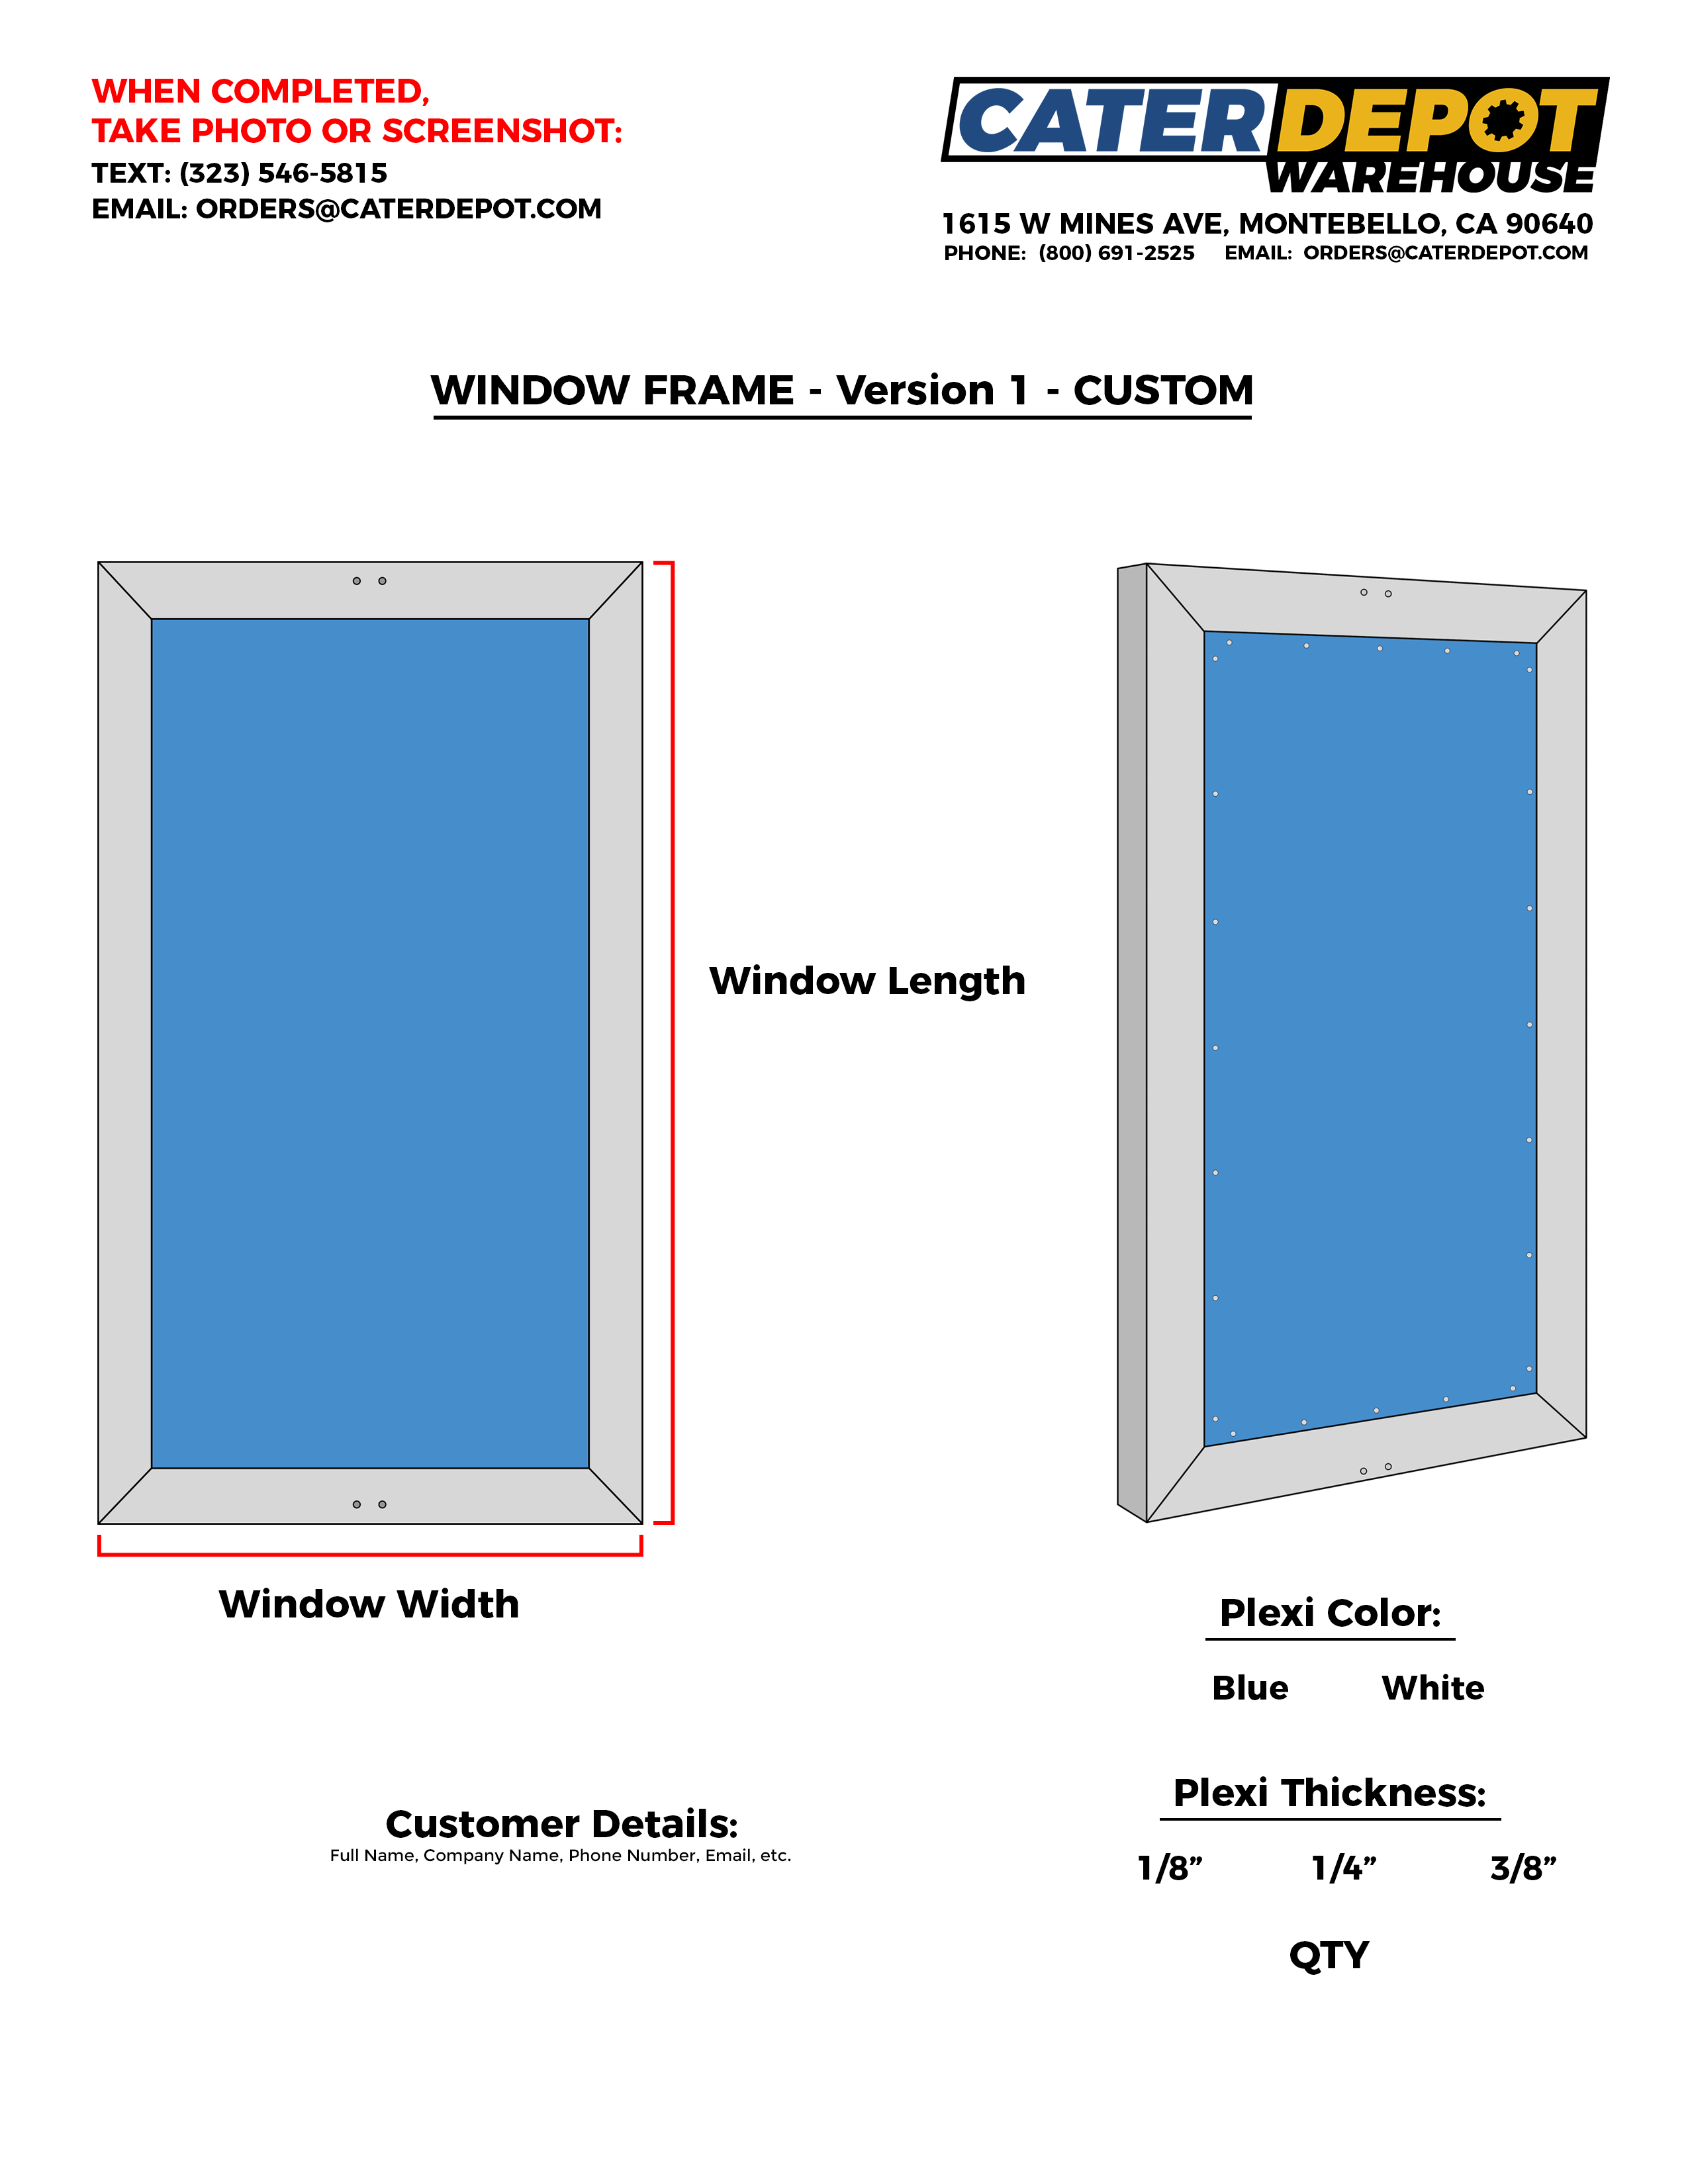 Custom Window Frame v1